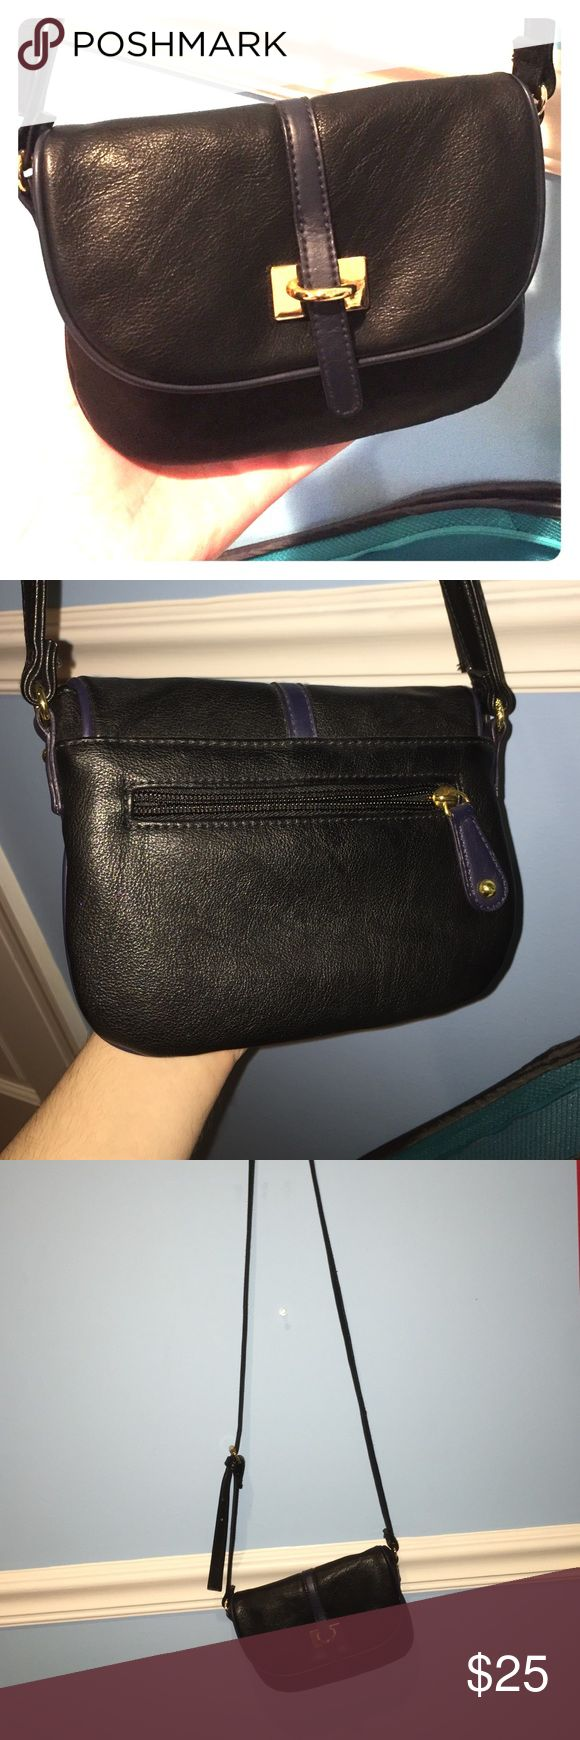 XXI black and navy purse with strap Like-new XXI brand purse with long, adjustable strap, inner and outer pockets. Main body and strap are black faux leather with navy faux leather accent strip. Gold buckles and snap. Barely used. XXI Bags Crossbody Bags